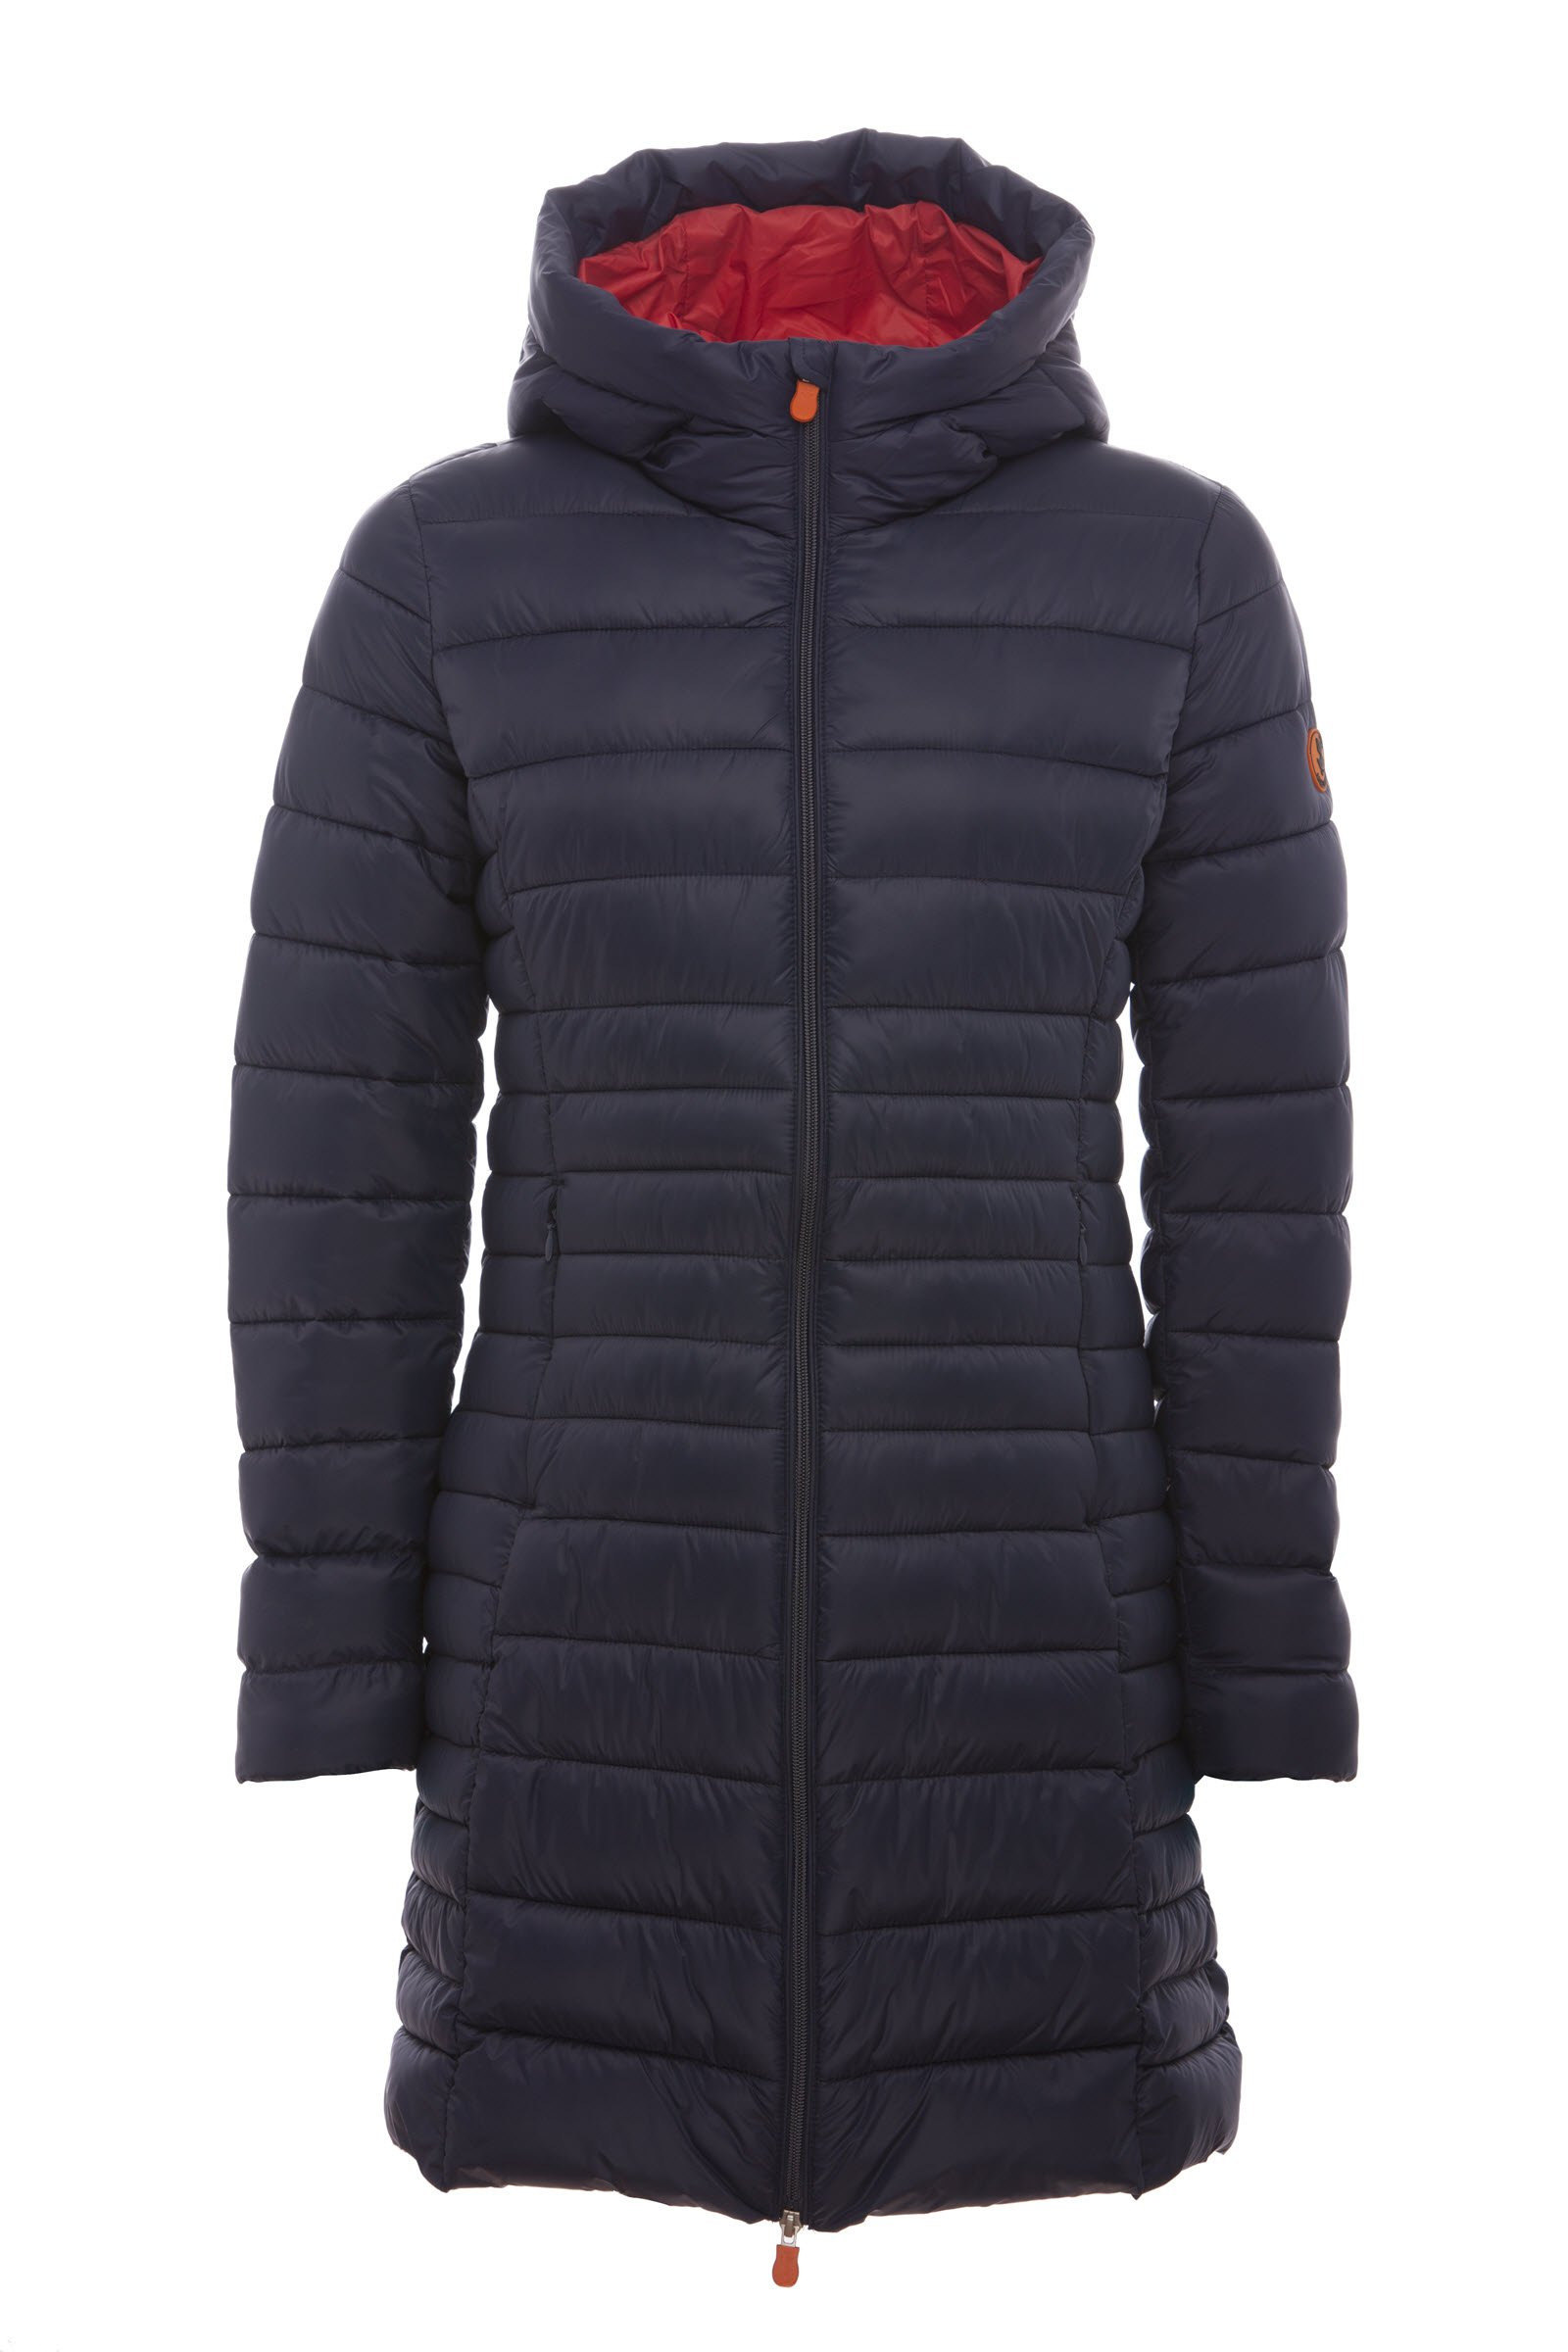 Navy Coat, $298 @savetheducksusa.com